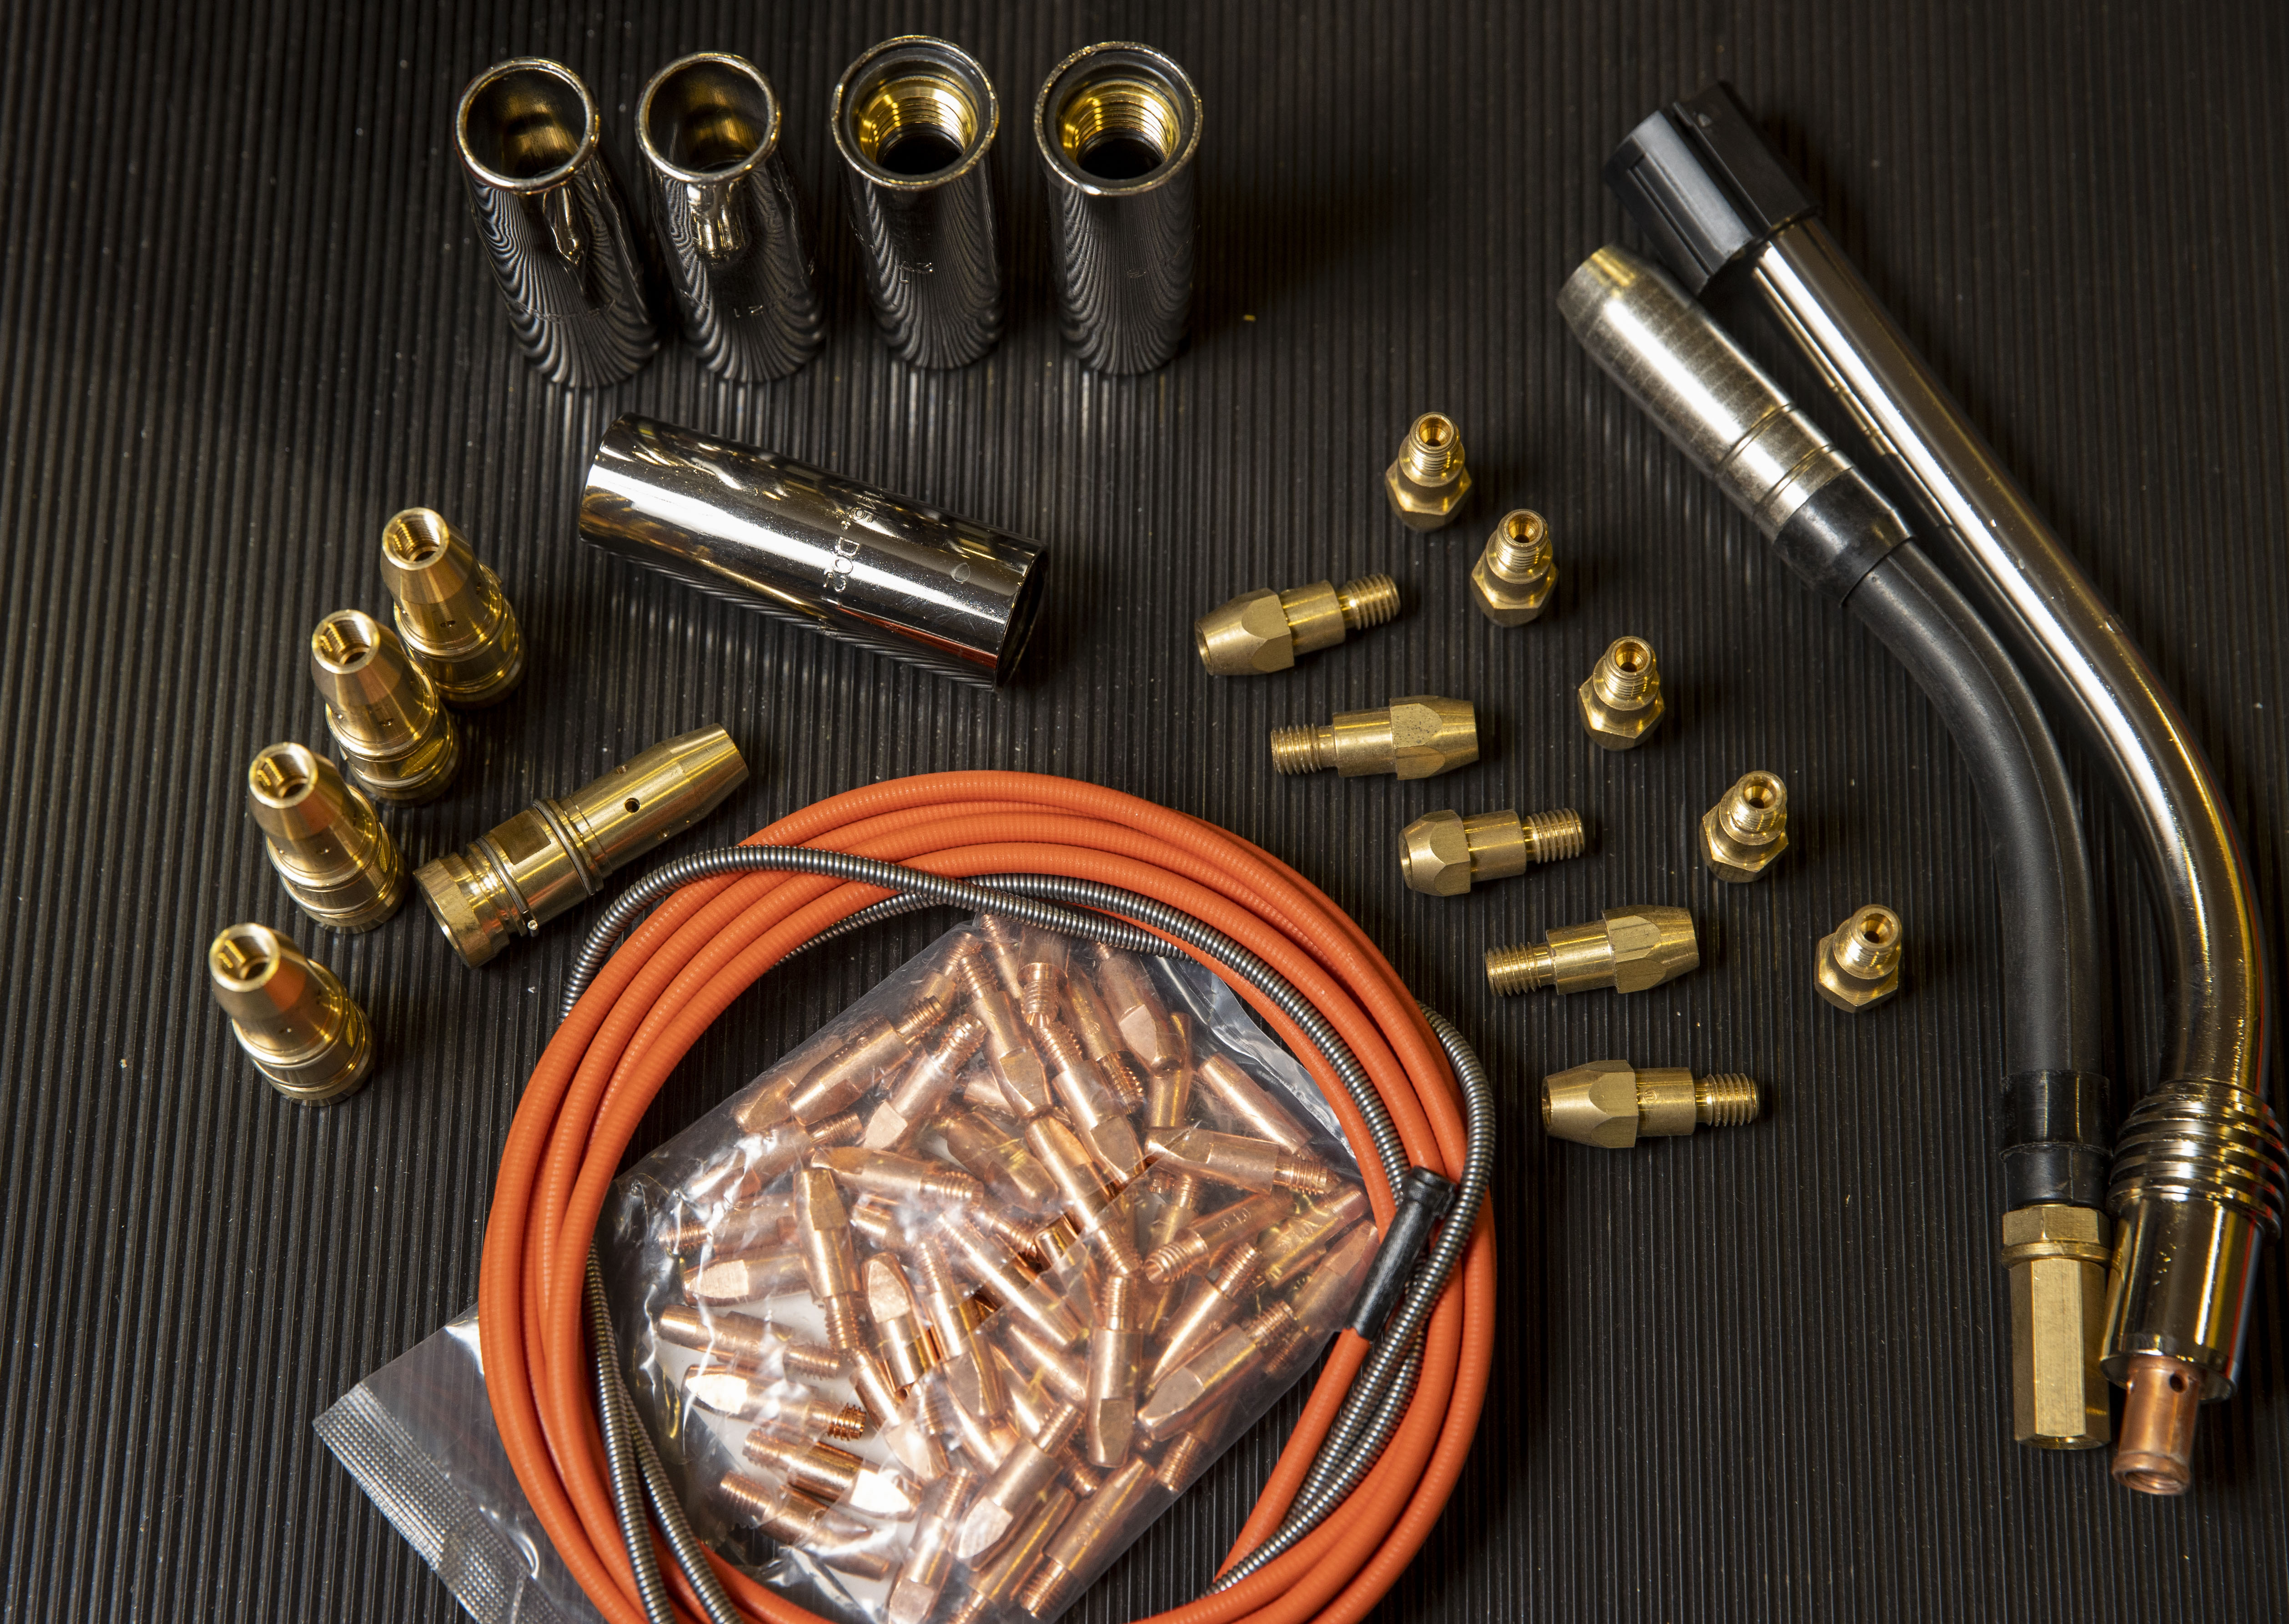 mig-torches-and-spares